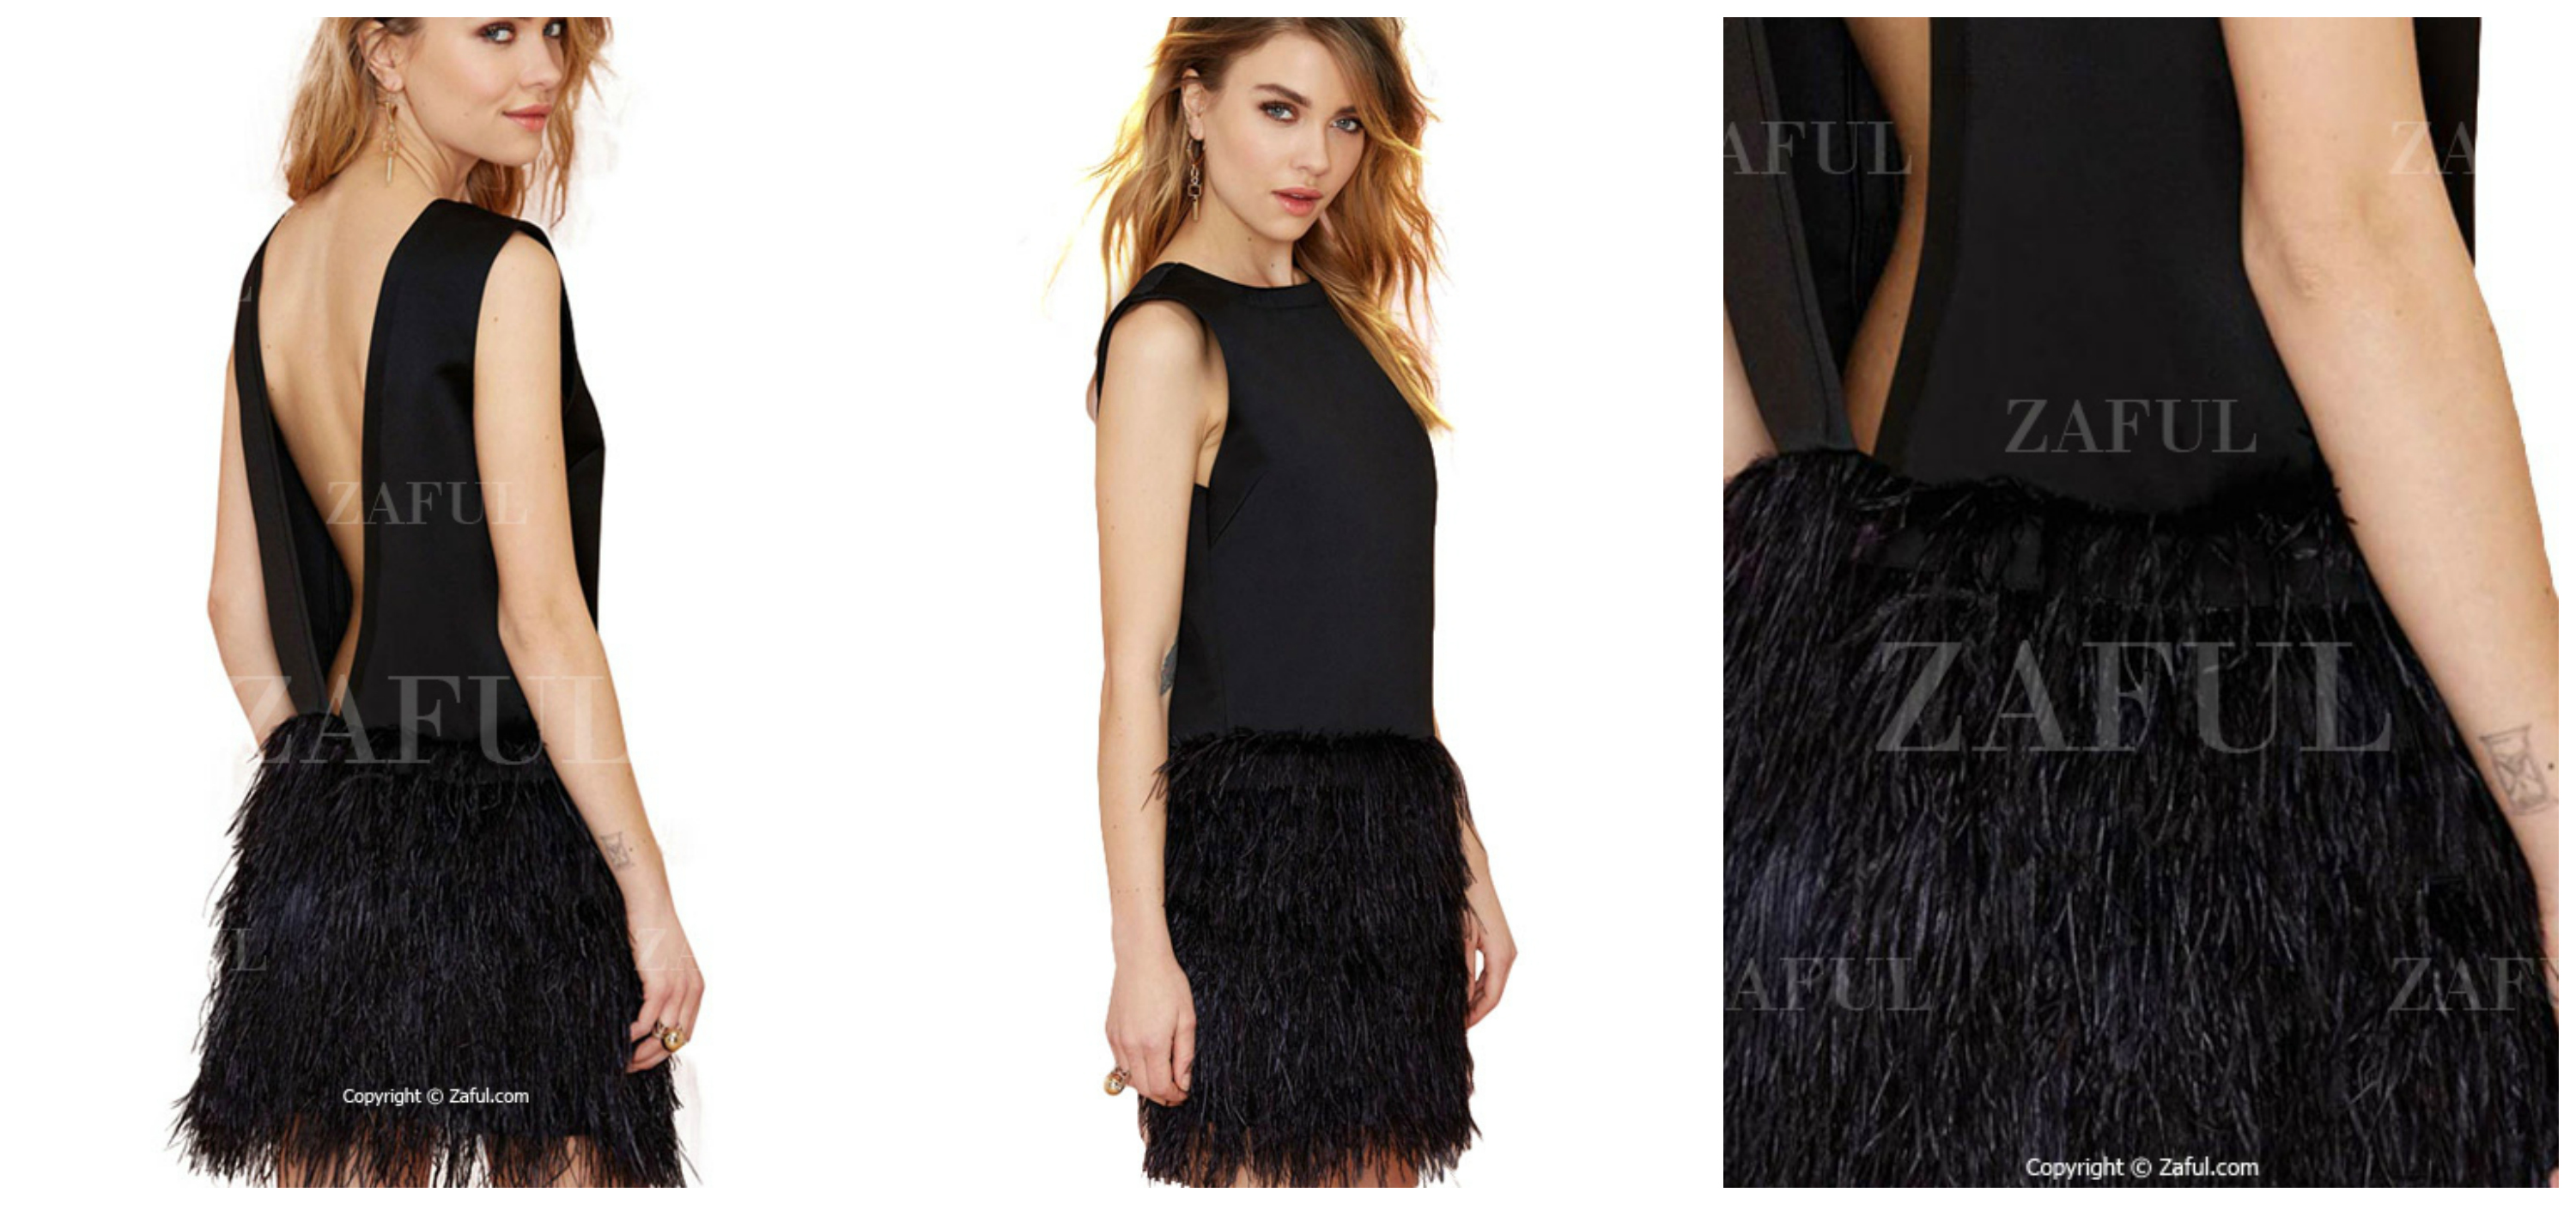 fringe-total-black-lbd-easter-party-zaful